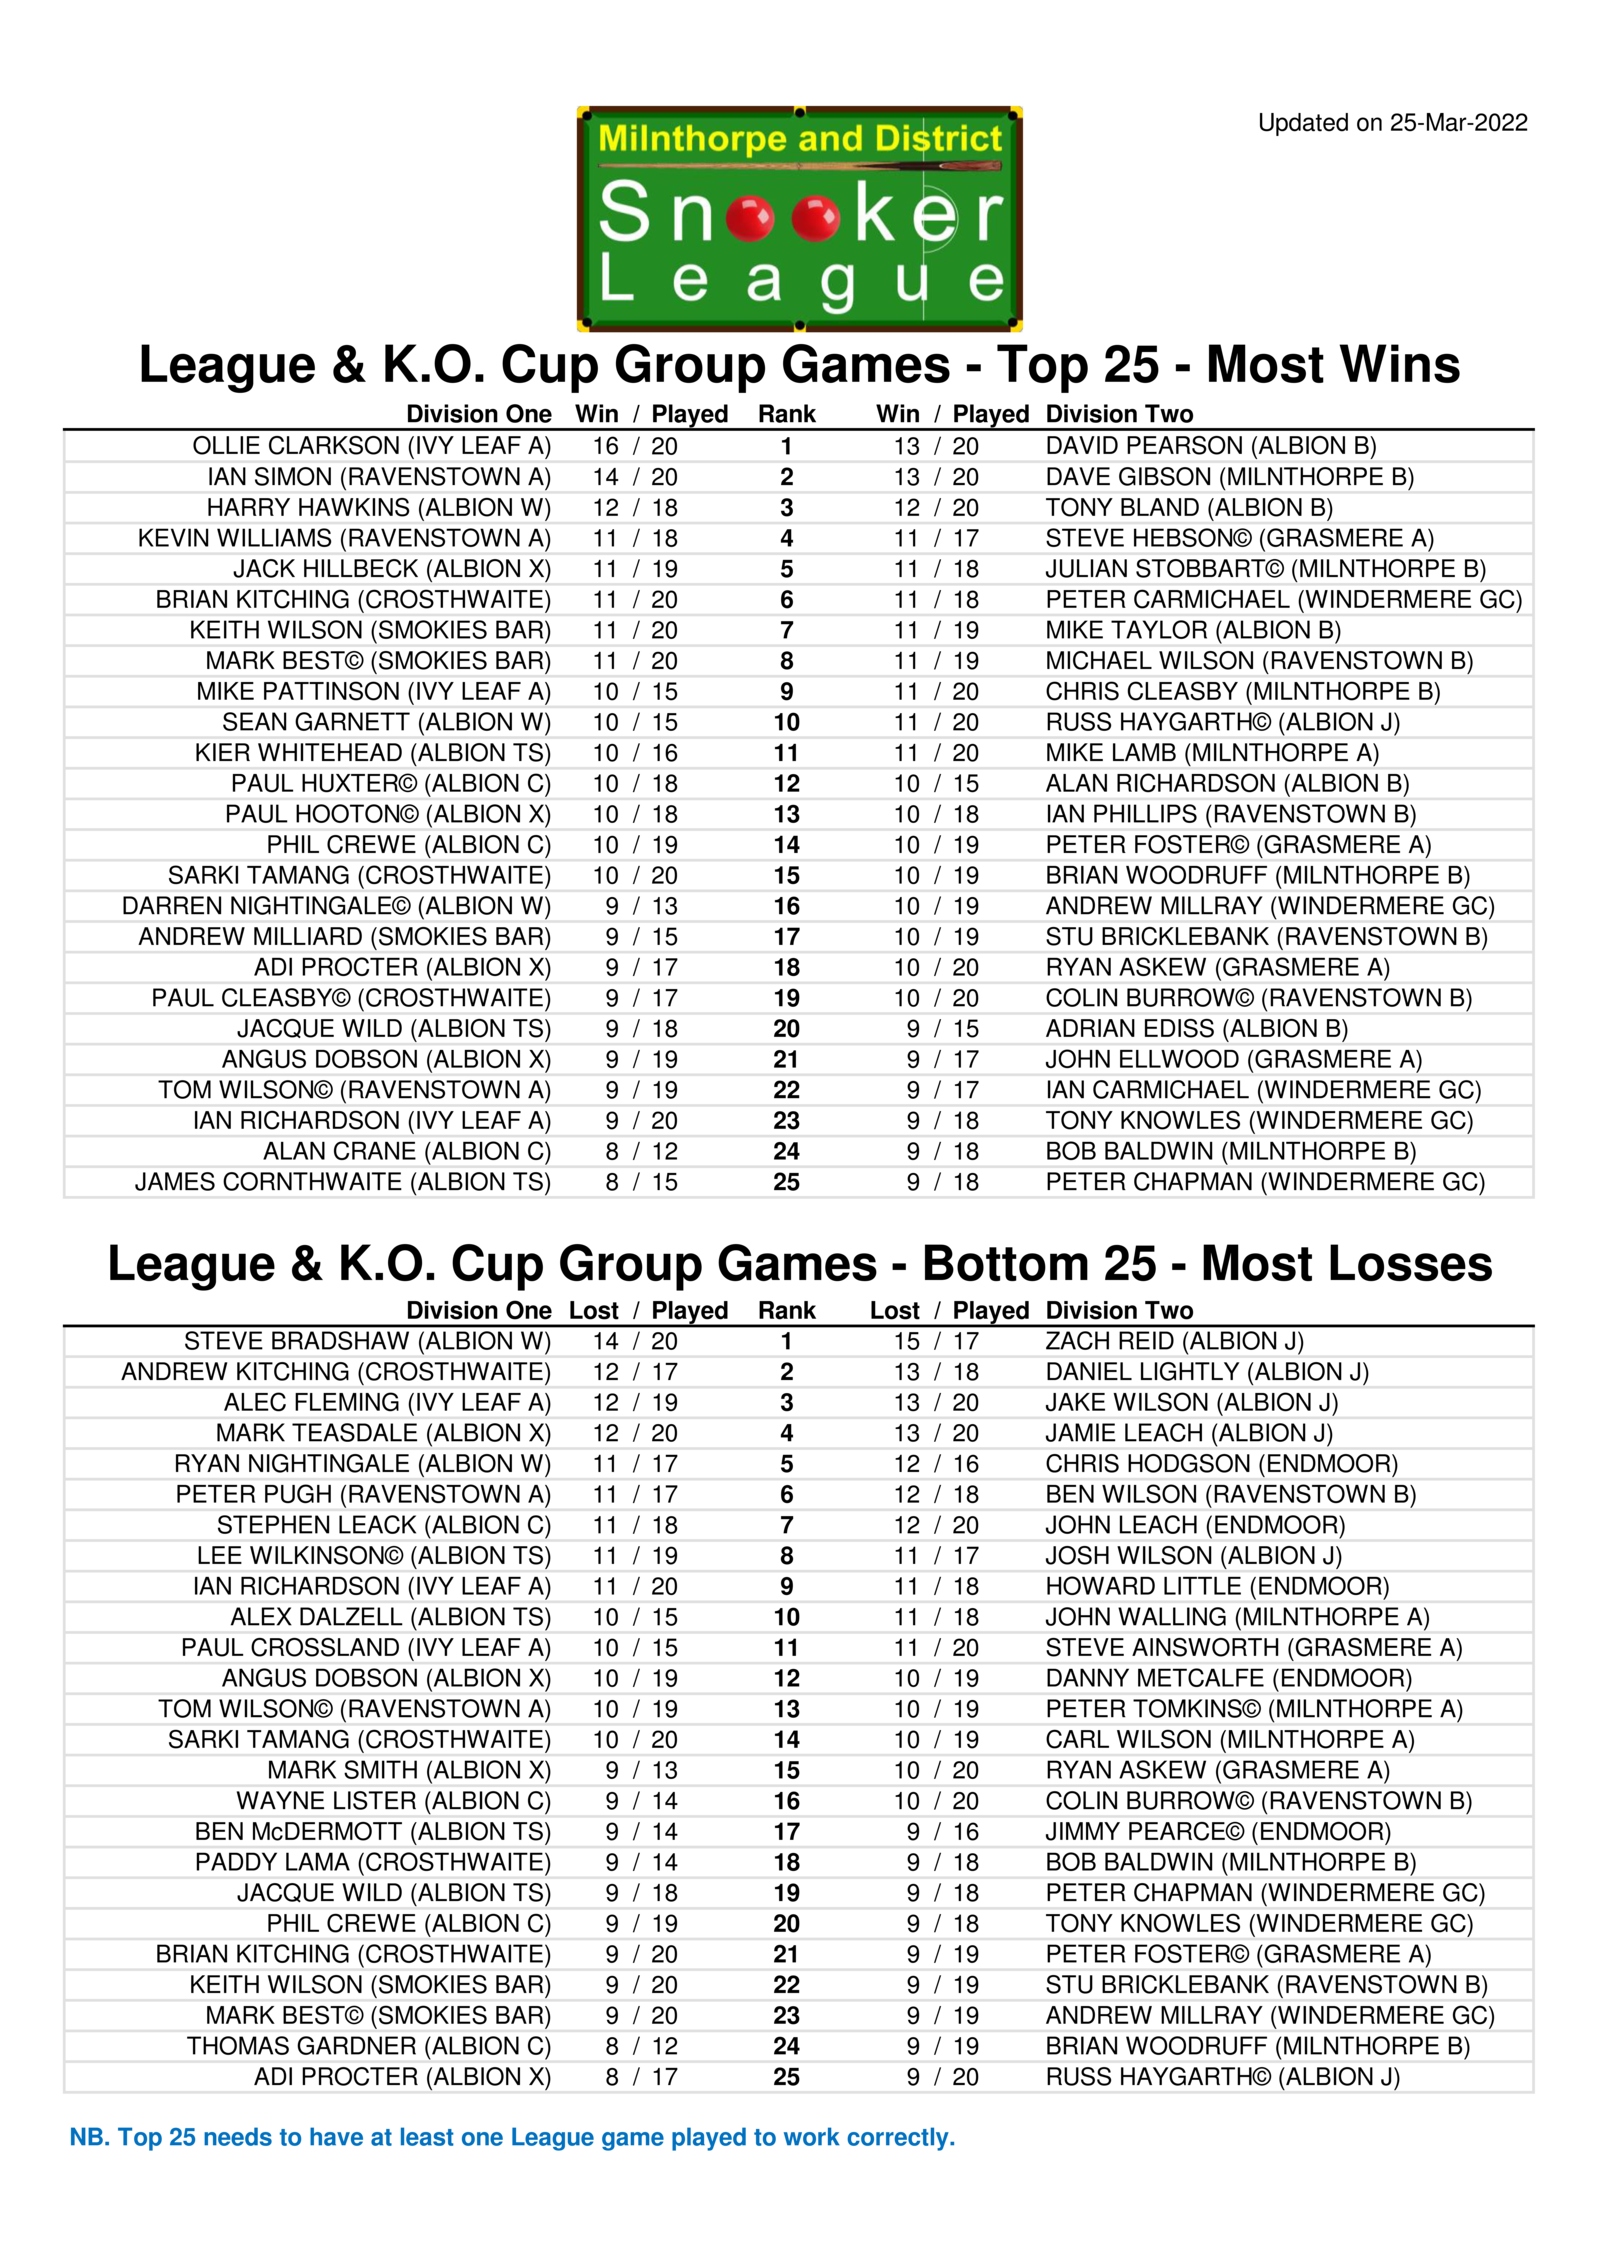 Top 25 League & K.O. Cup Group Games Stats